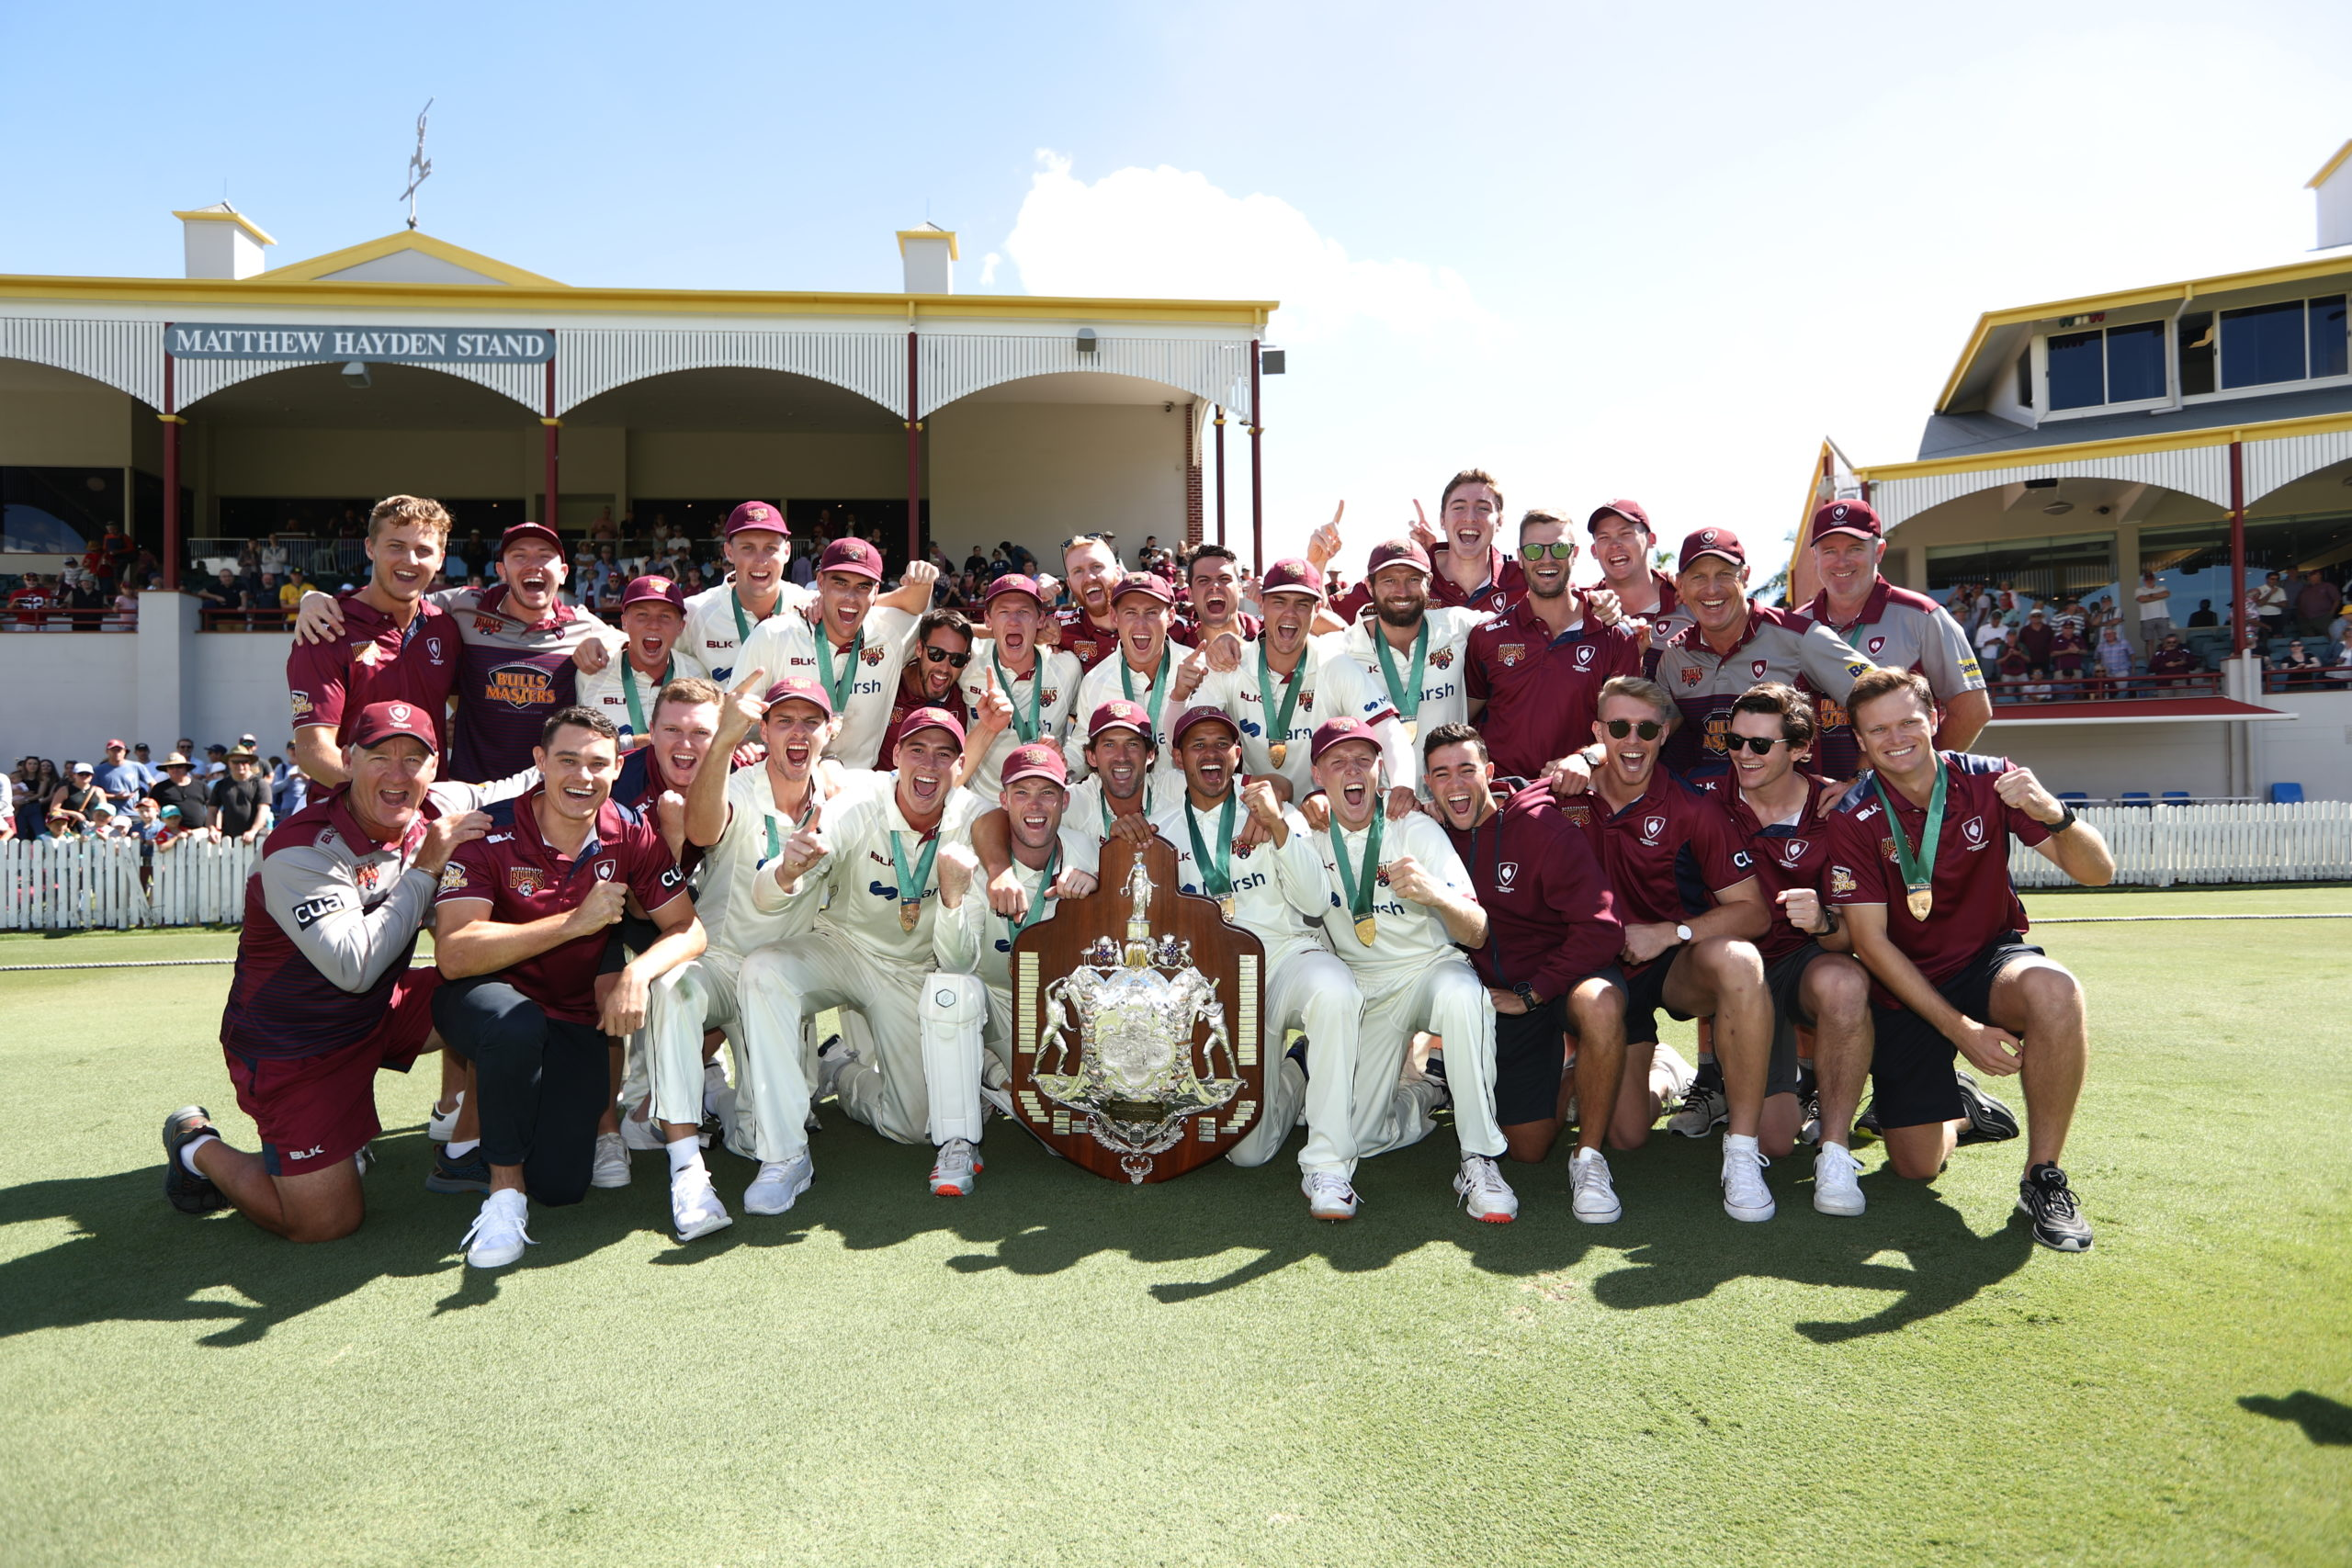 Cricket Australia: Queensland wins ninth Marsh Sheffield Shield title